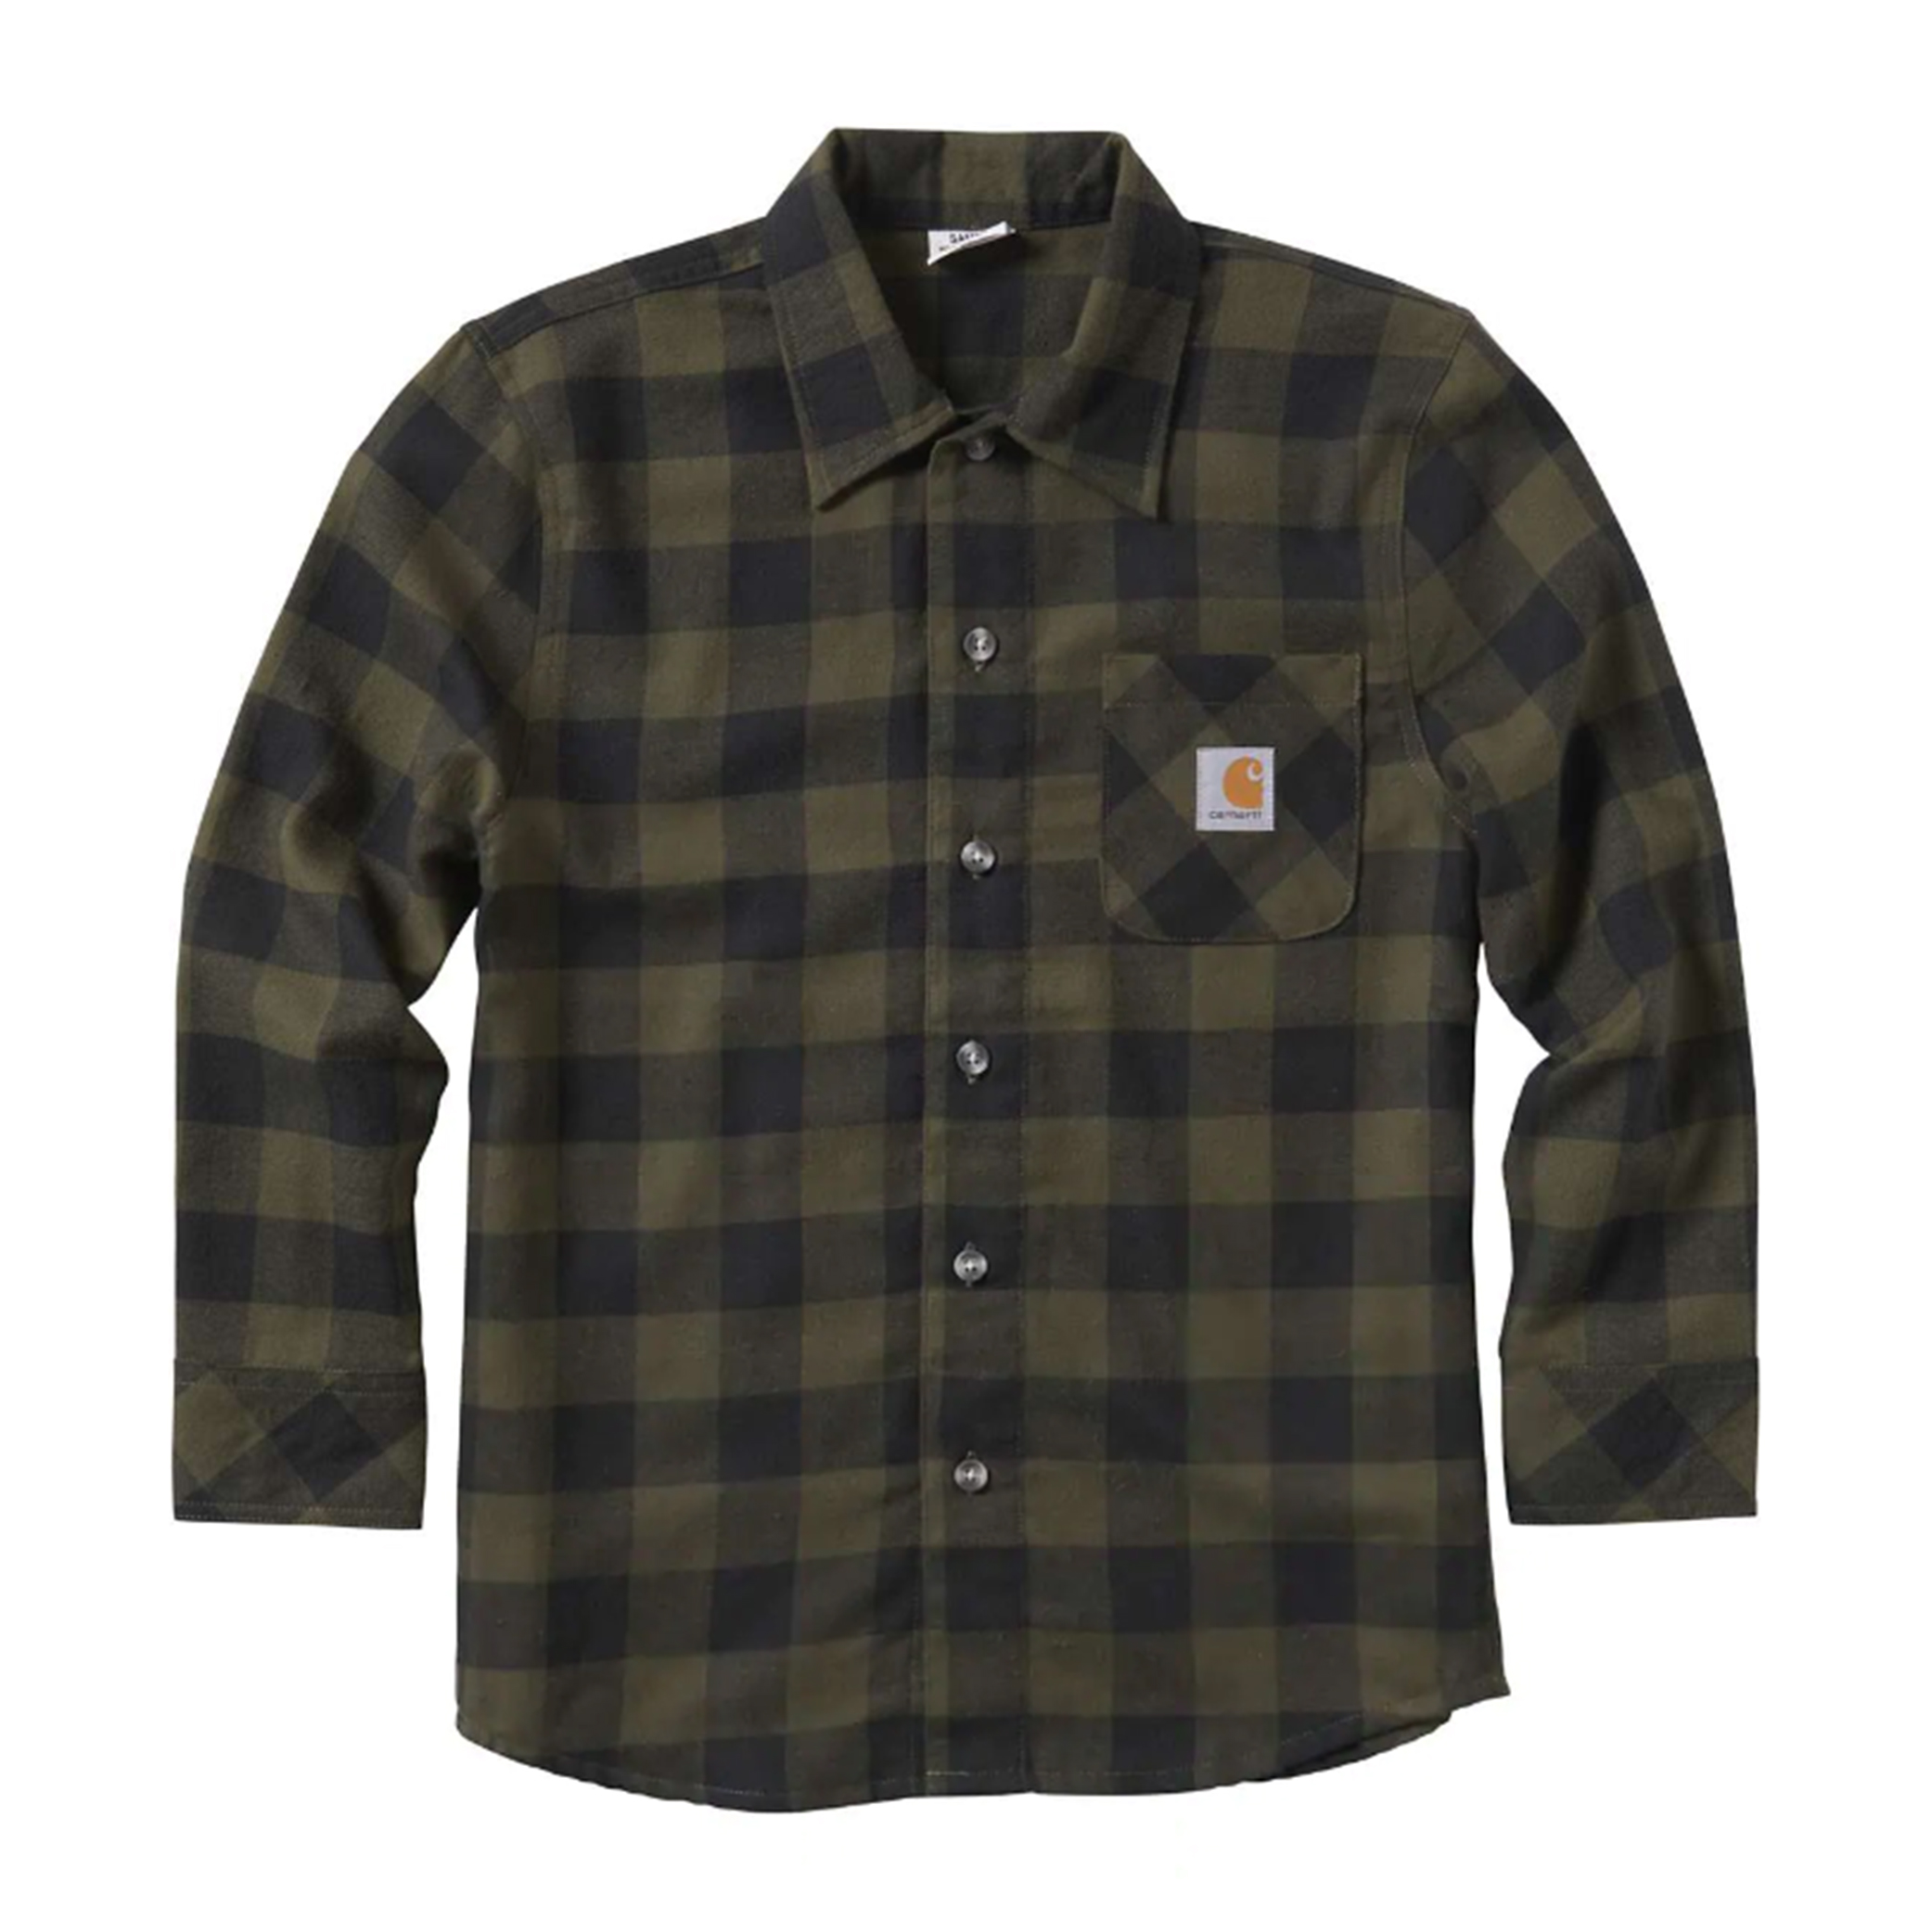 Boy's Shirt Long Sleeve Plaid Shirt, Green/Blk, swatch